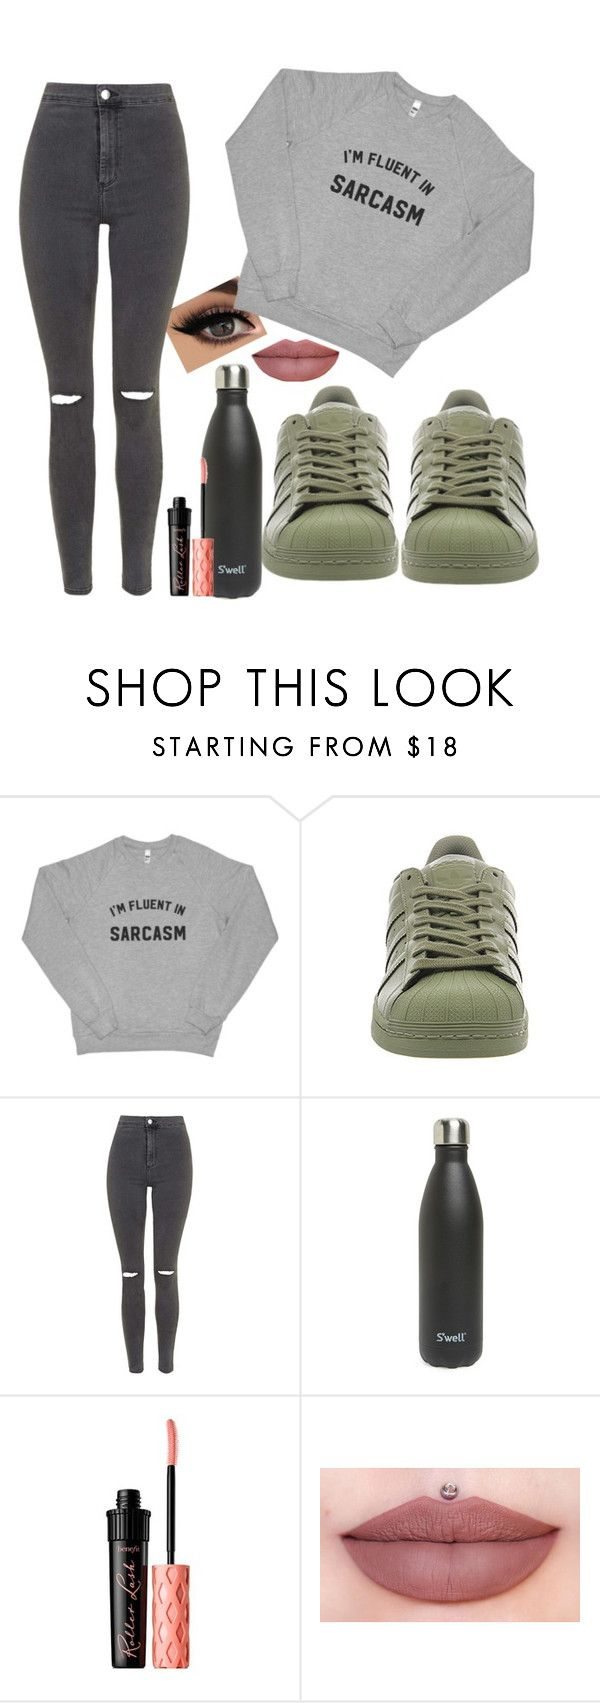 """Untitled #83"" by emswilliams ❤ liked on Polyvore featuring adidas, Topshop and S'well"